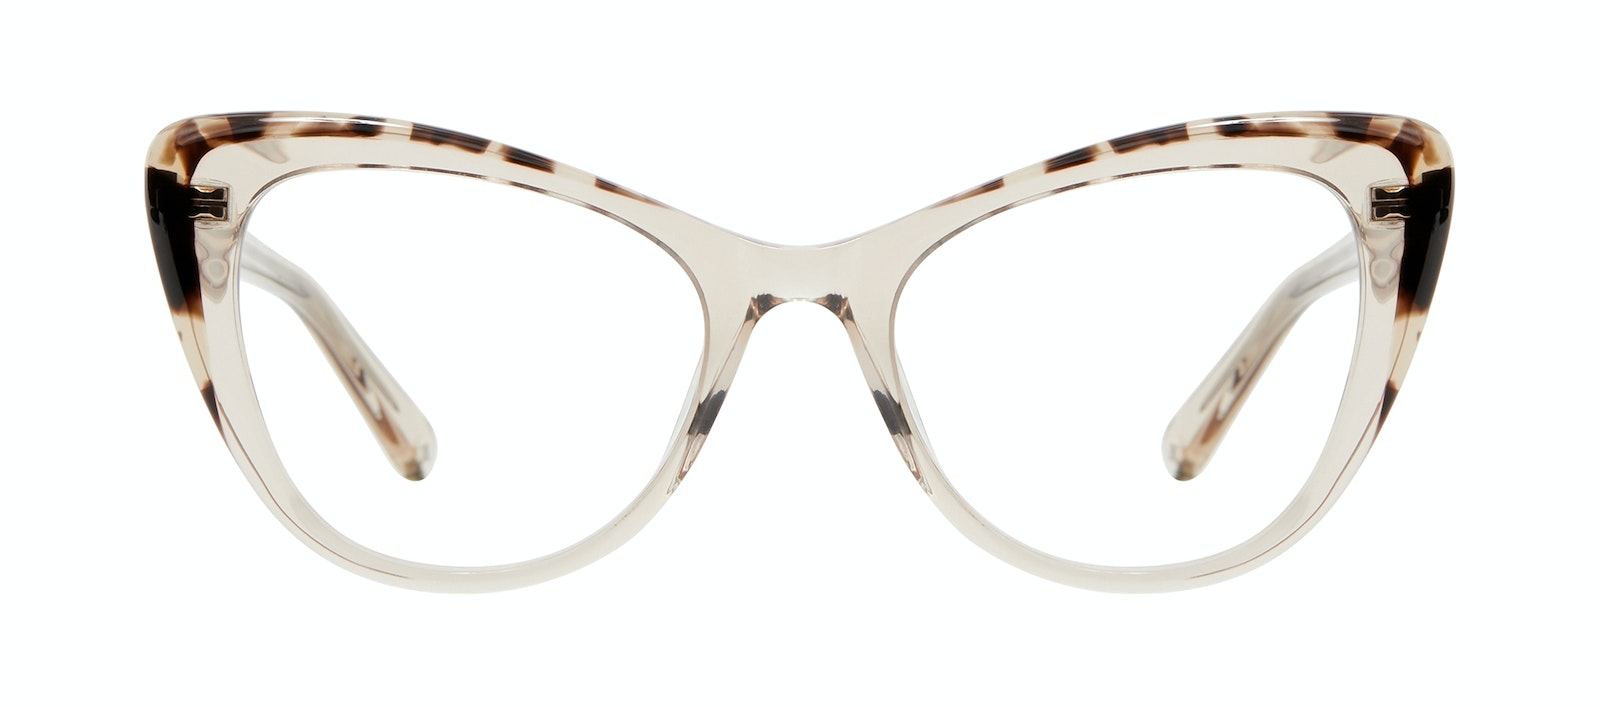 Affordable Fashion Glasses Cat Eye Eyeglasses Women Verve Golden Tortoise Front